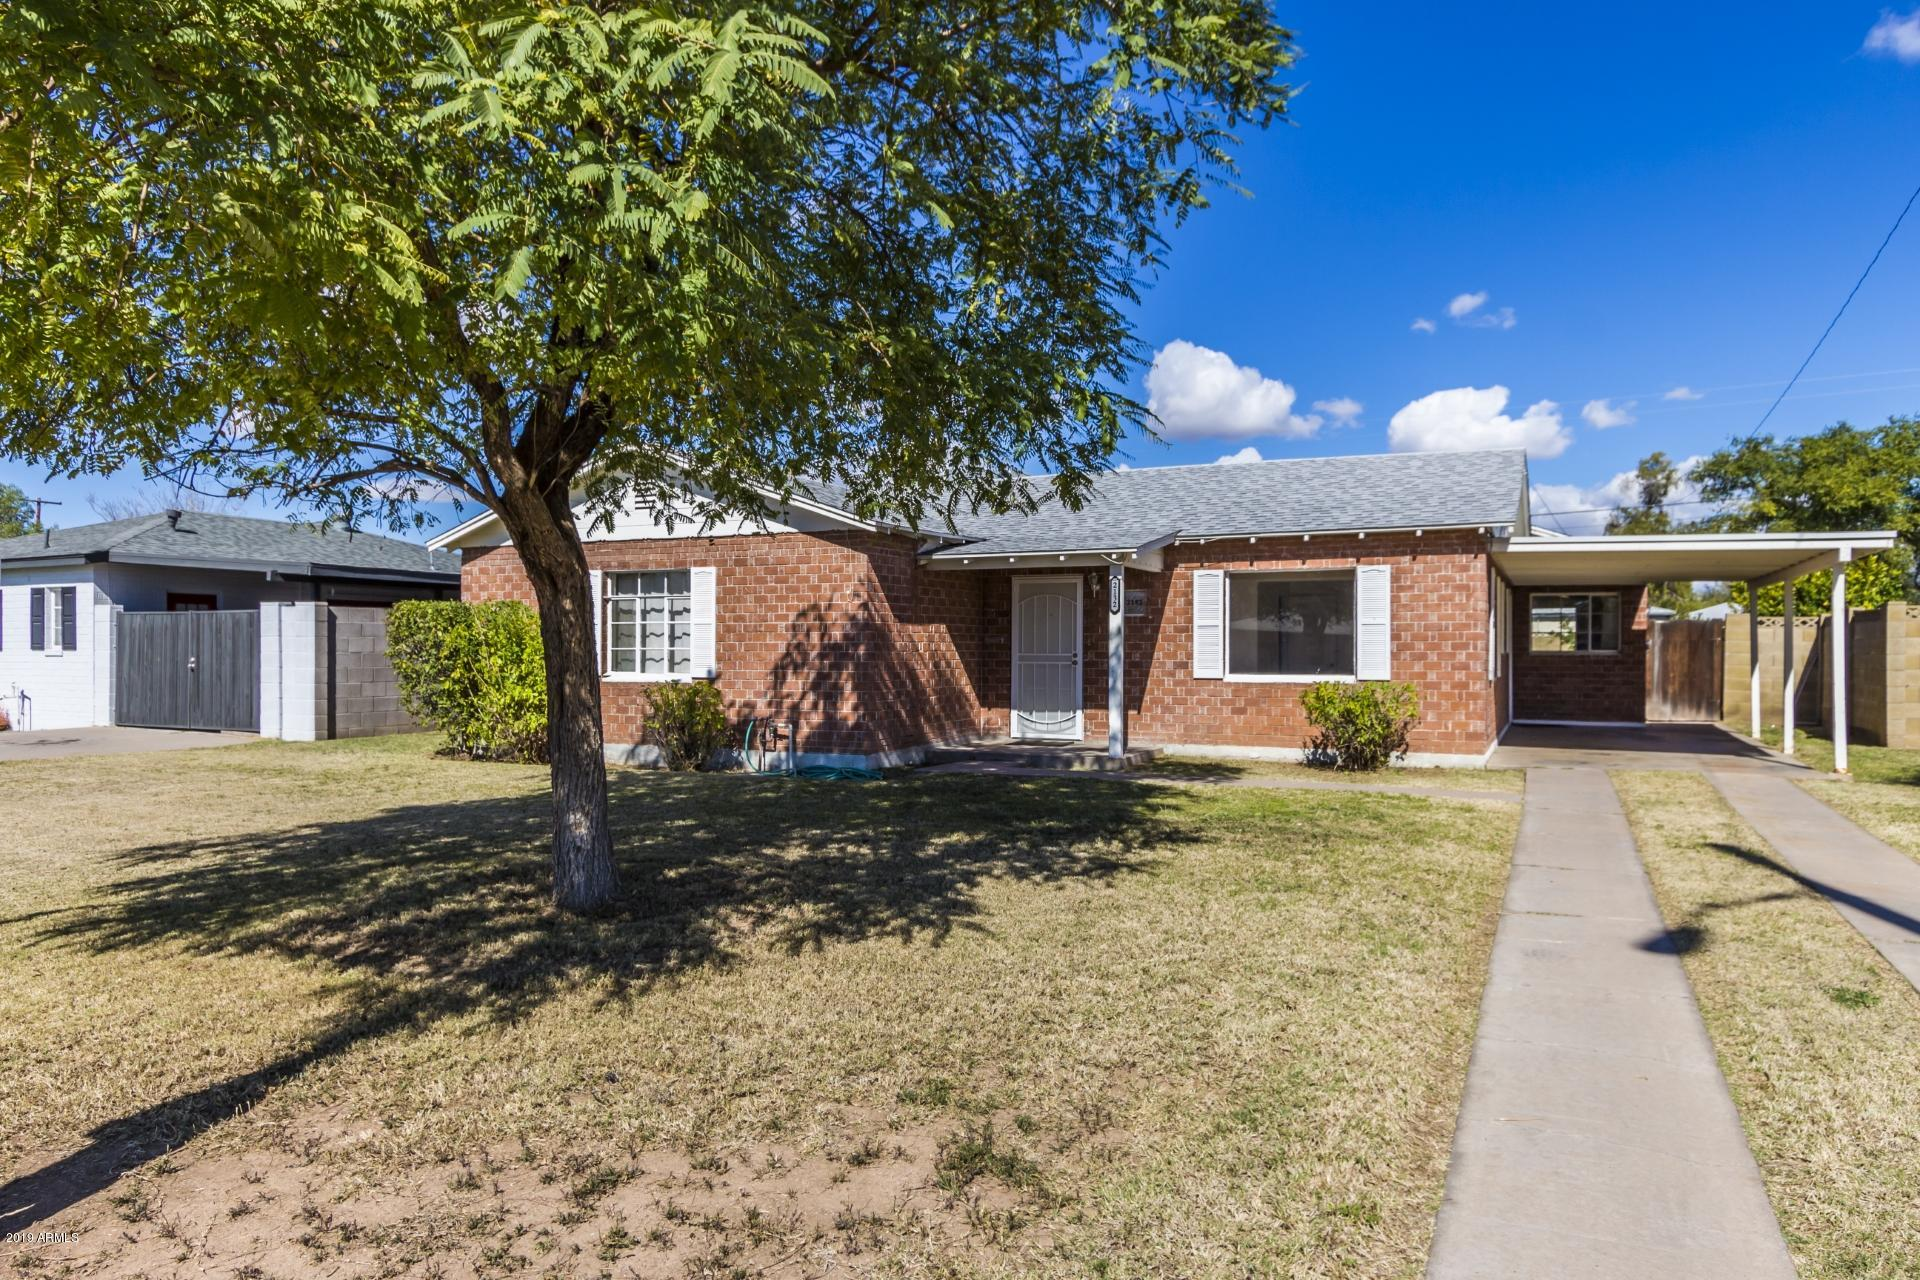 Photo for 2132 W Earll Drive, Phoenix, AZ 85015 (MLS # 5889180)